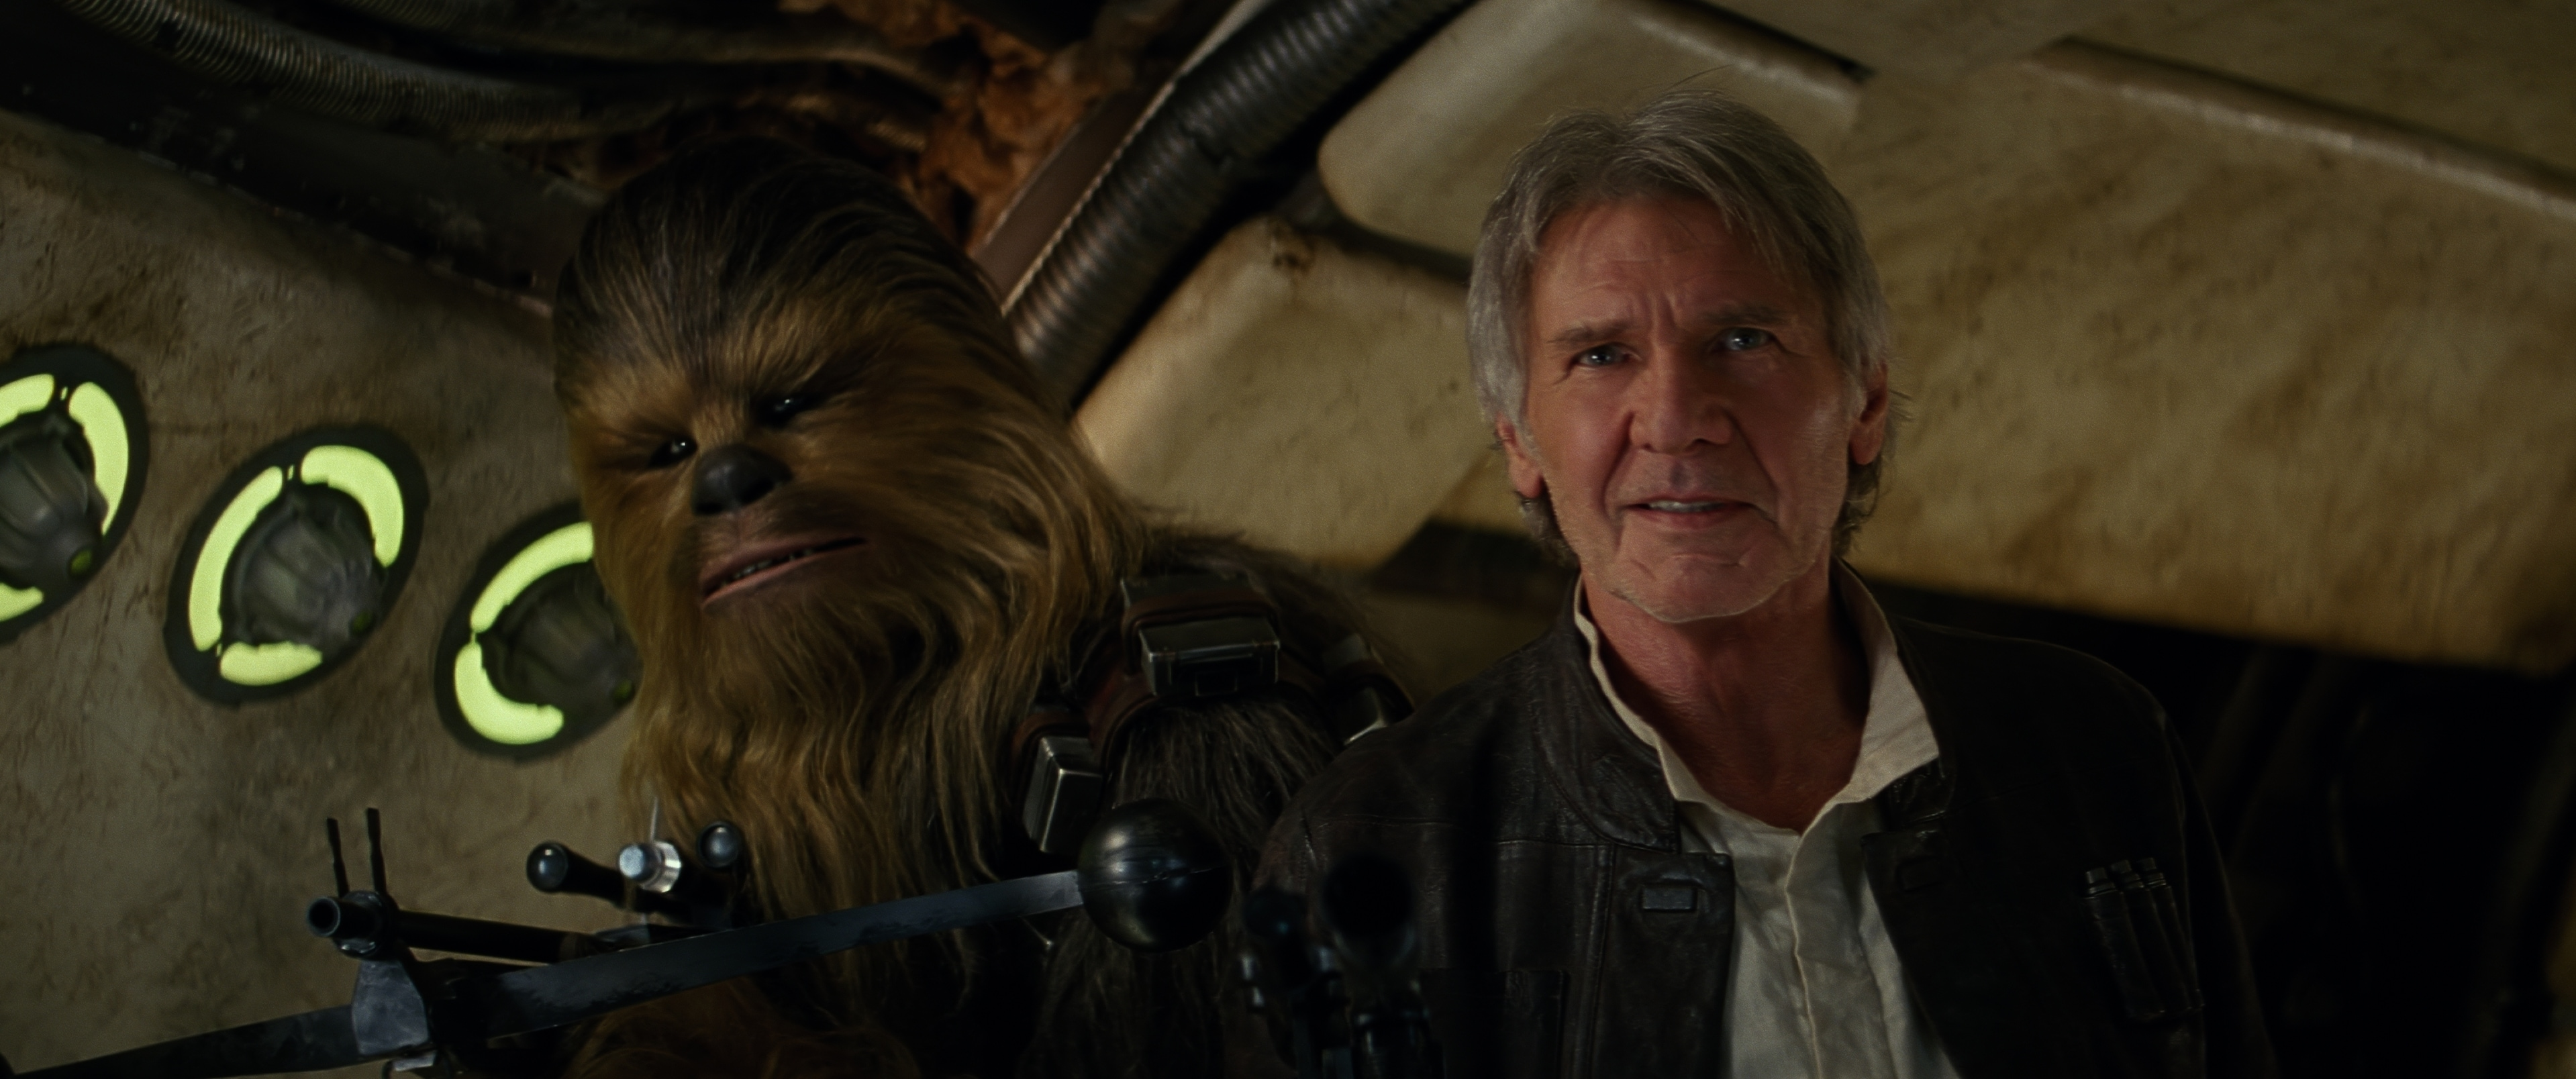 Joonas Suotamo as Chewbacca and Harrison Ford as Han Solo on the Millennium Falcon